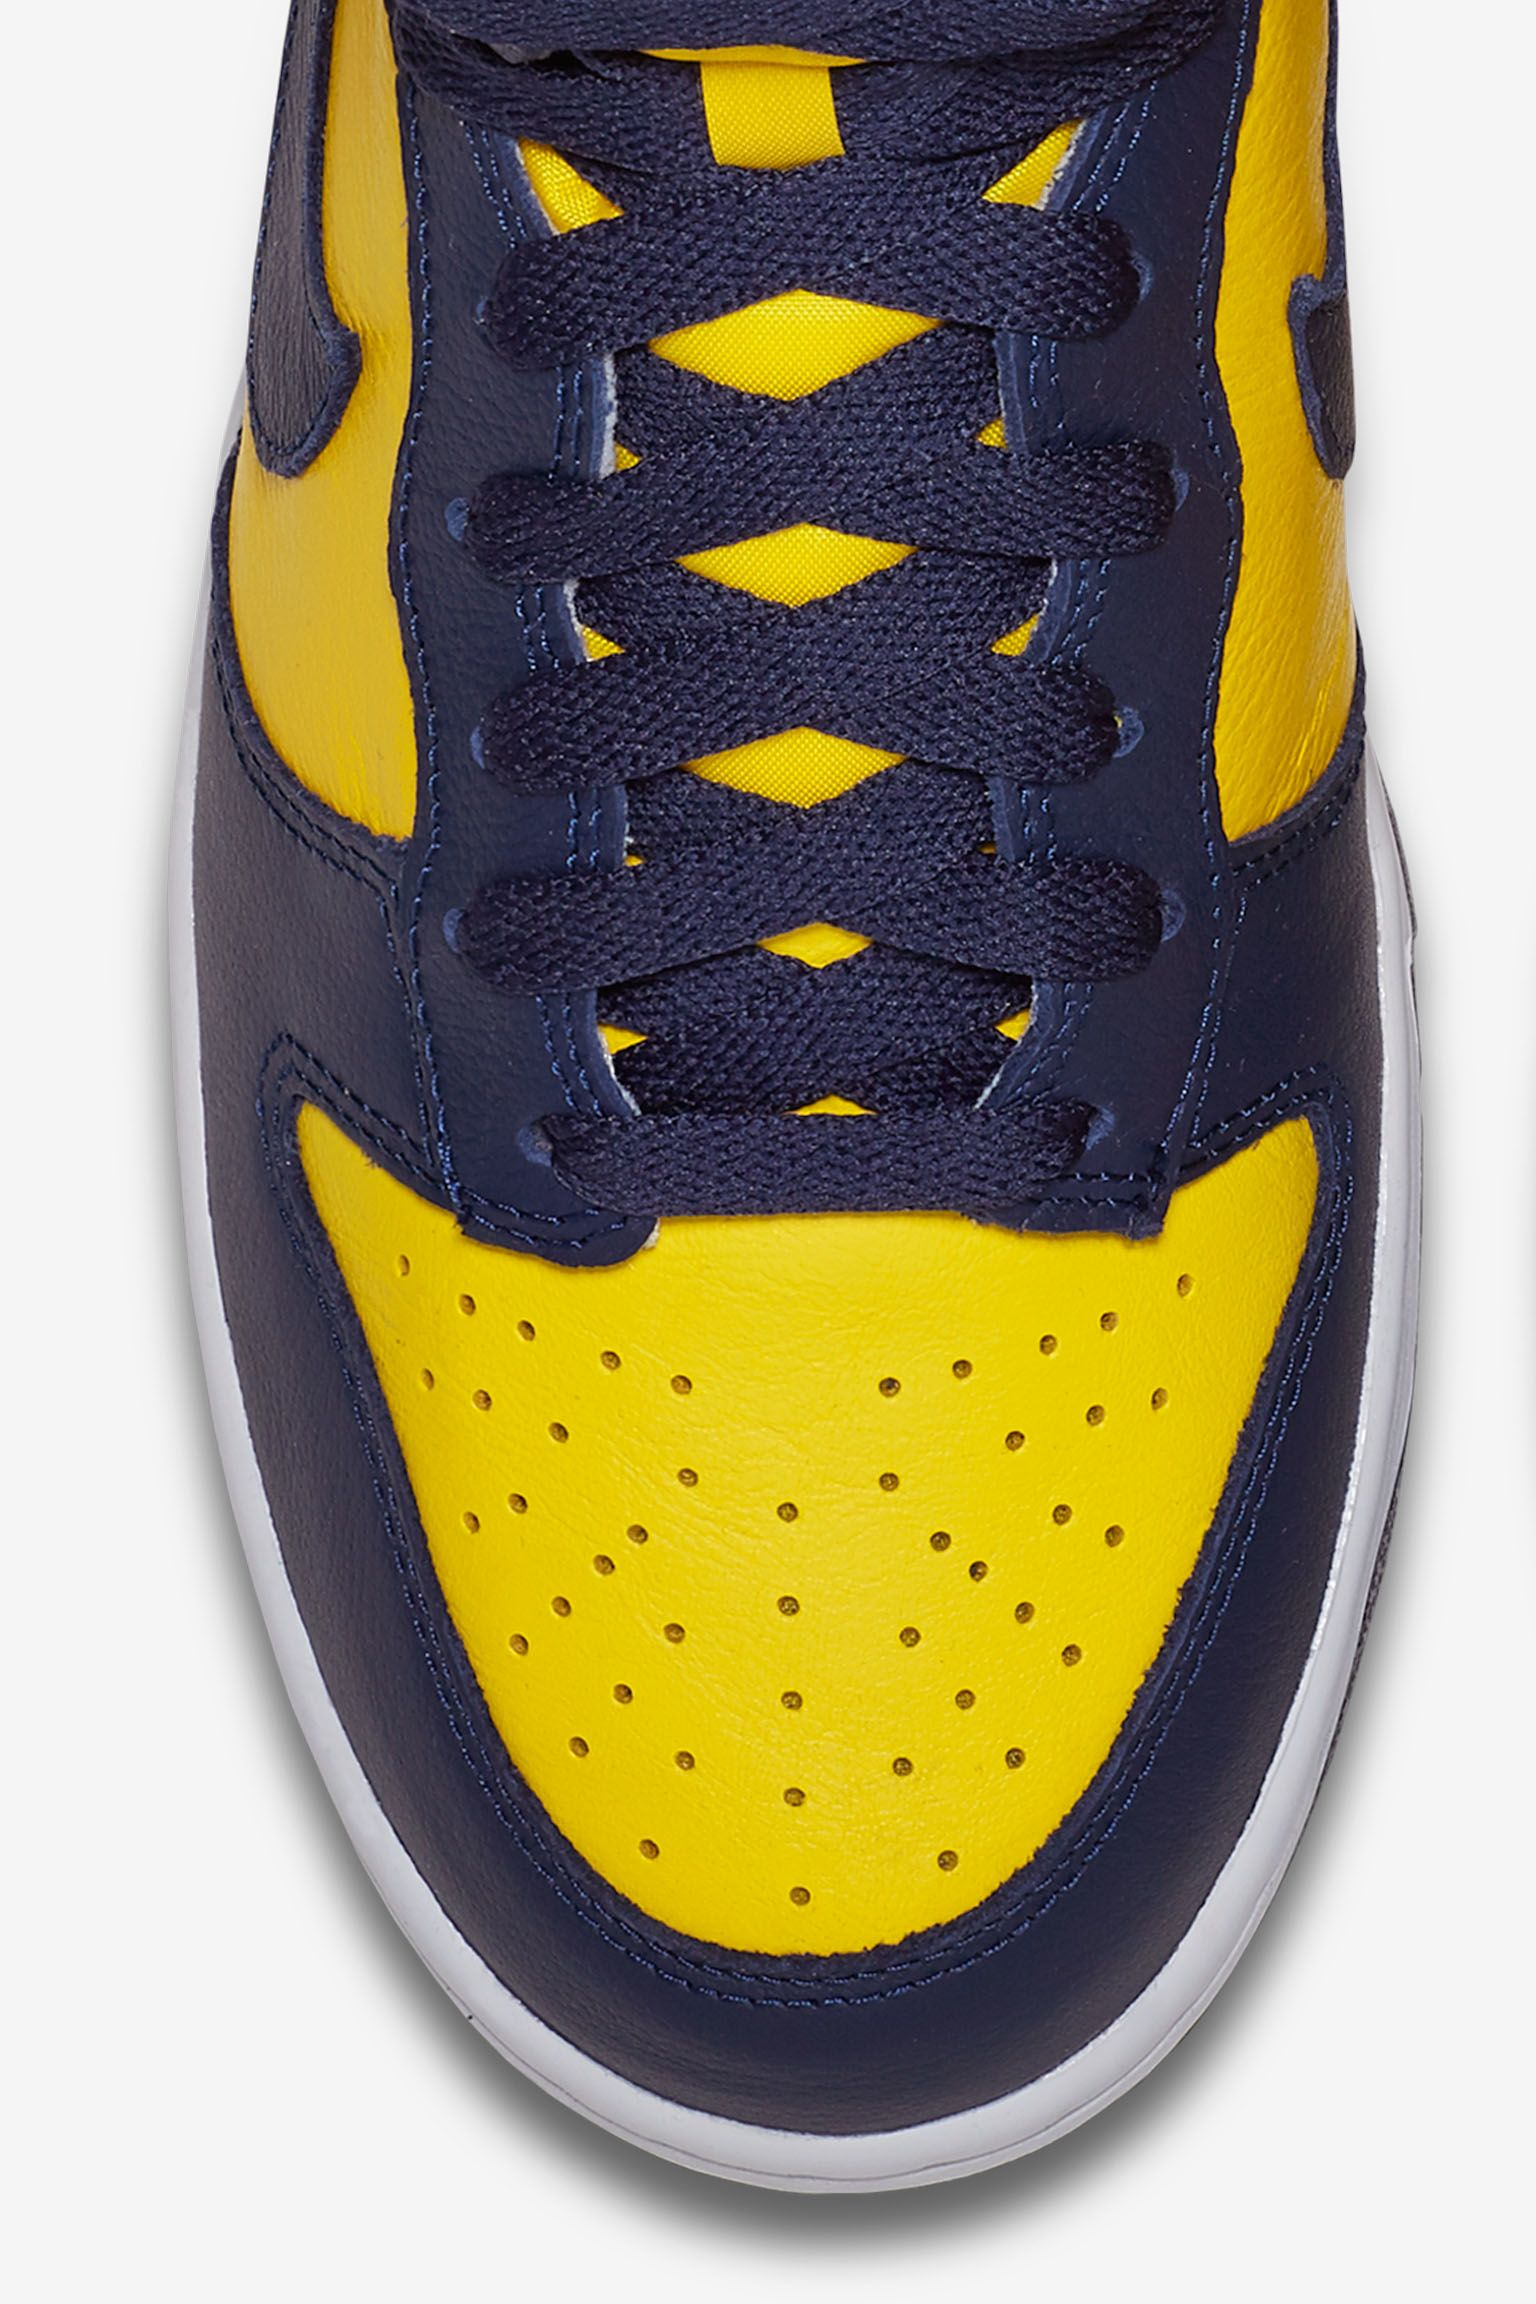 Nike College Colors Program: Nike Dunk High 'Michigan'